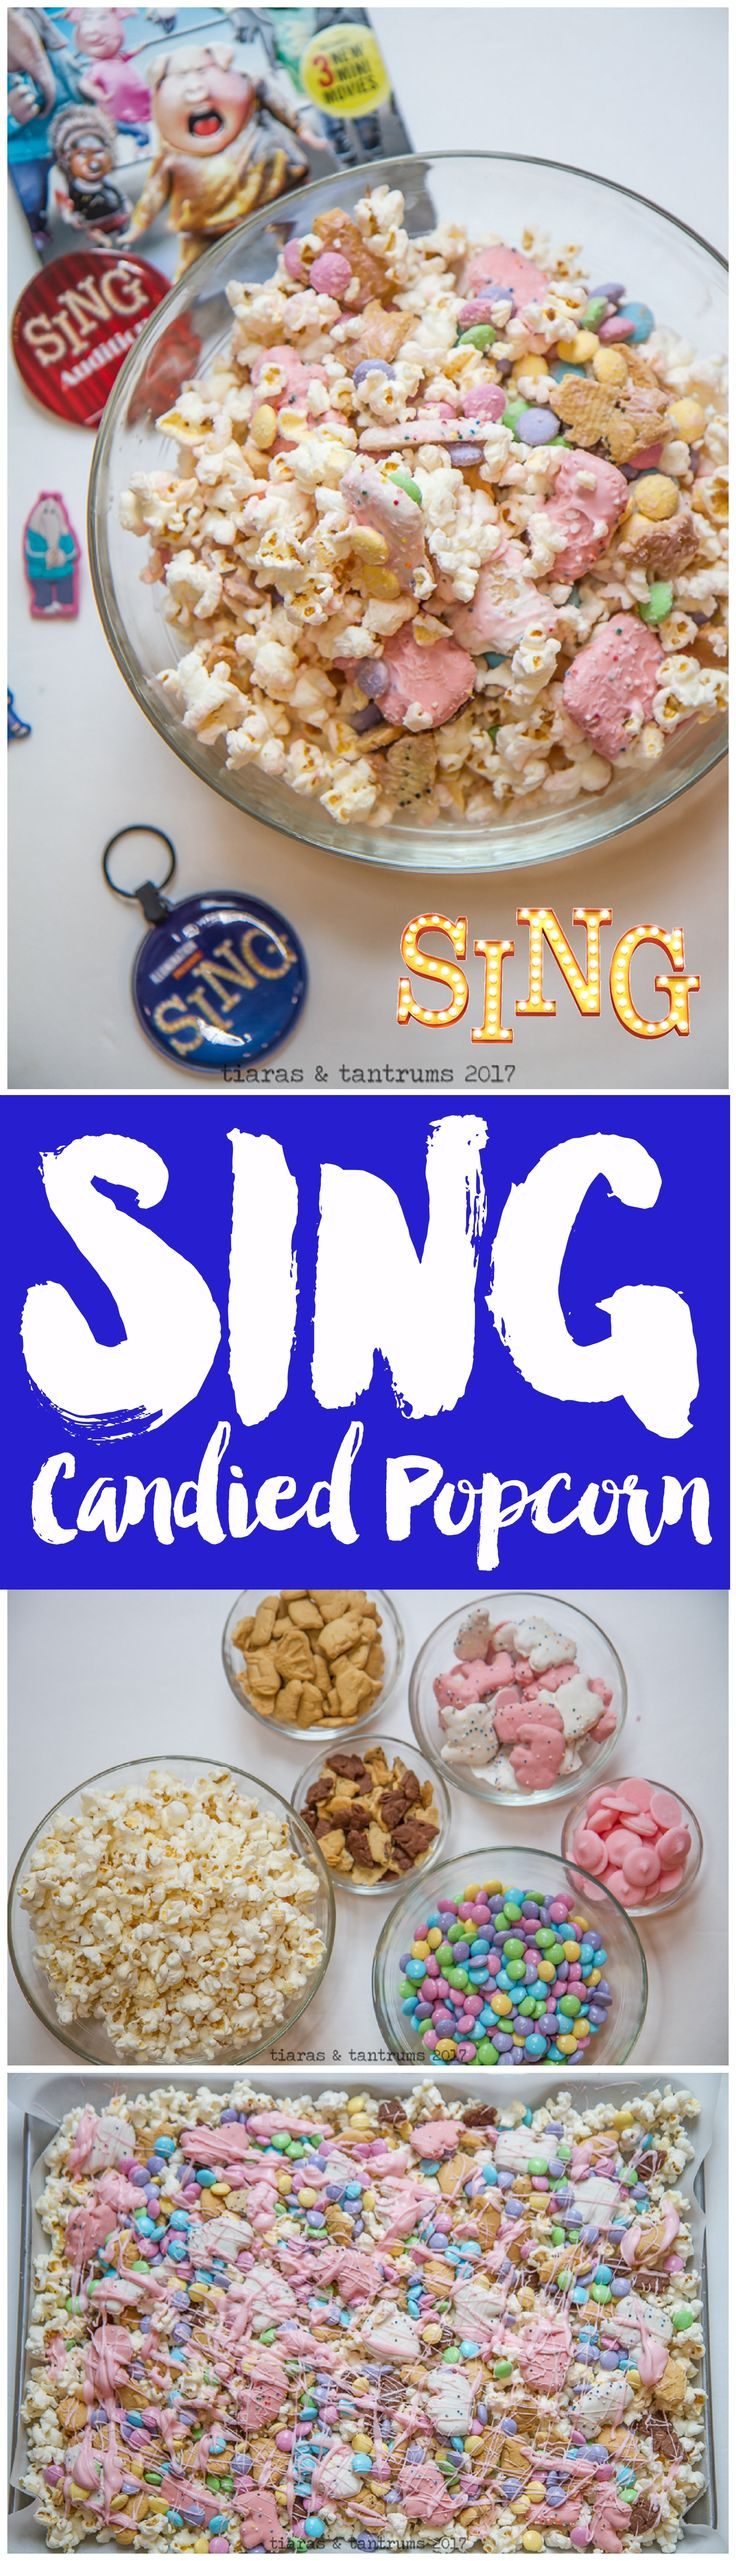 Popcorn Crunch Mix to celebrate the SING Movie. SING Movie Party Ideas and Tips and Food. Popcorn with Animal Crackers, Frosted Animal Crackers, Cookies and M&Ms Easter Candy. This is perfect for Easter as well as Spring celebrations and Kid's parties!   https://www.tiarastantrums.com/blog/sing-candied-popcorn-mix